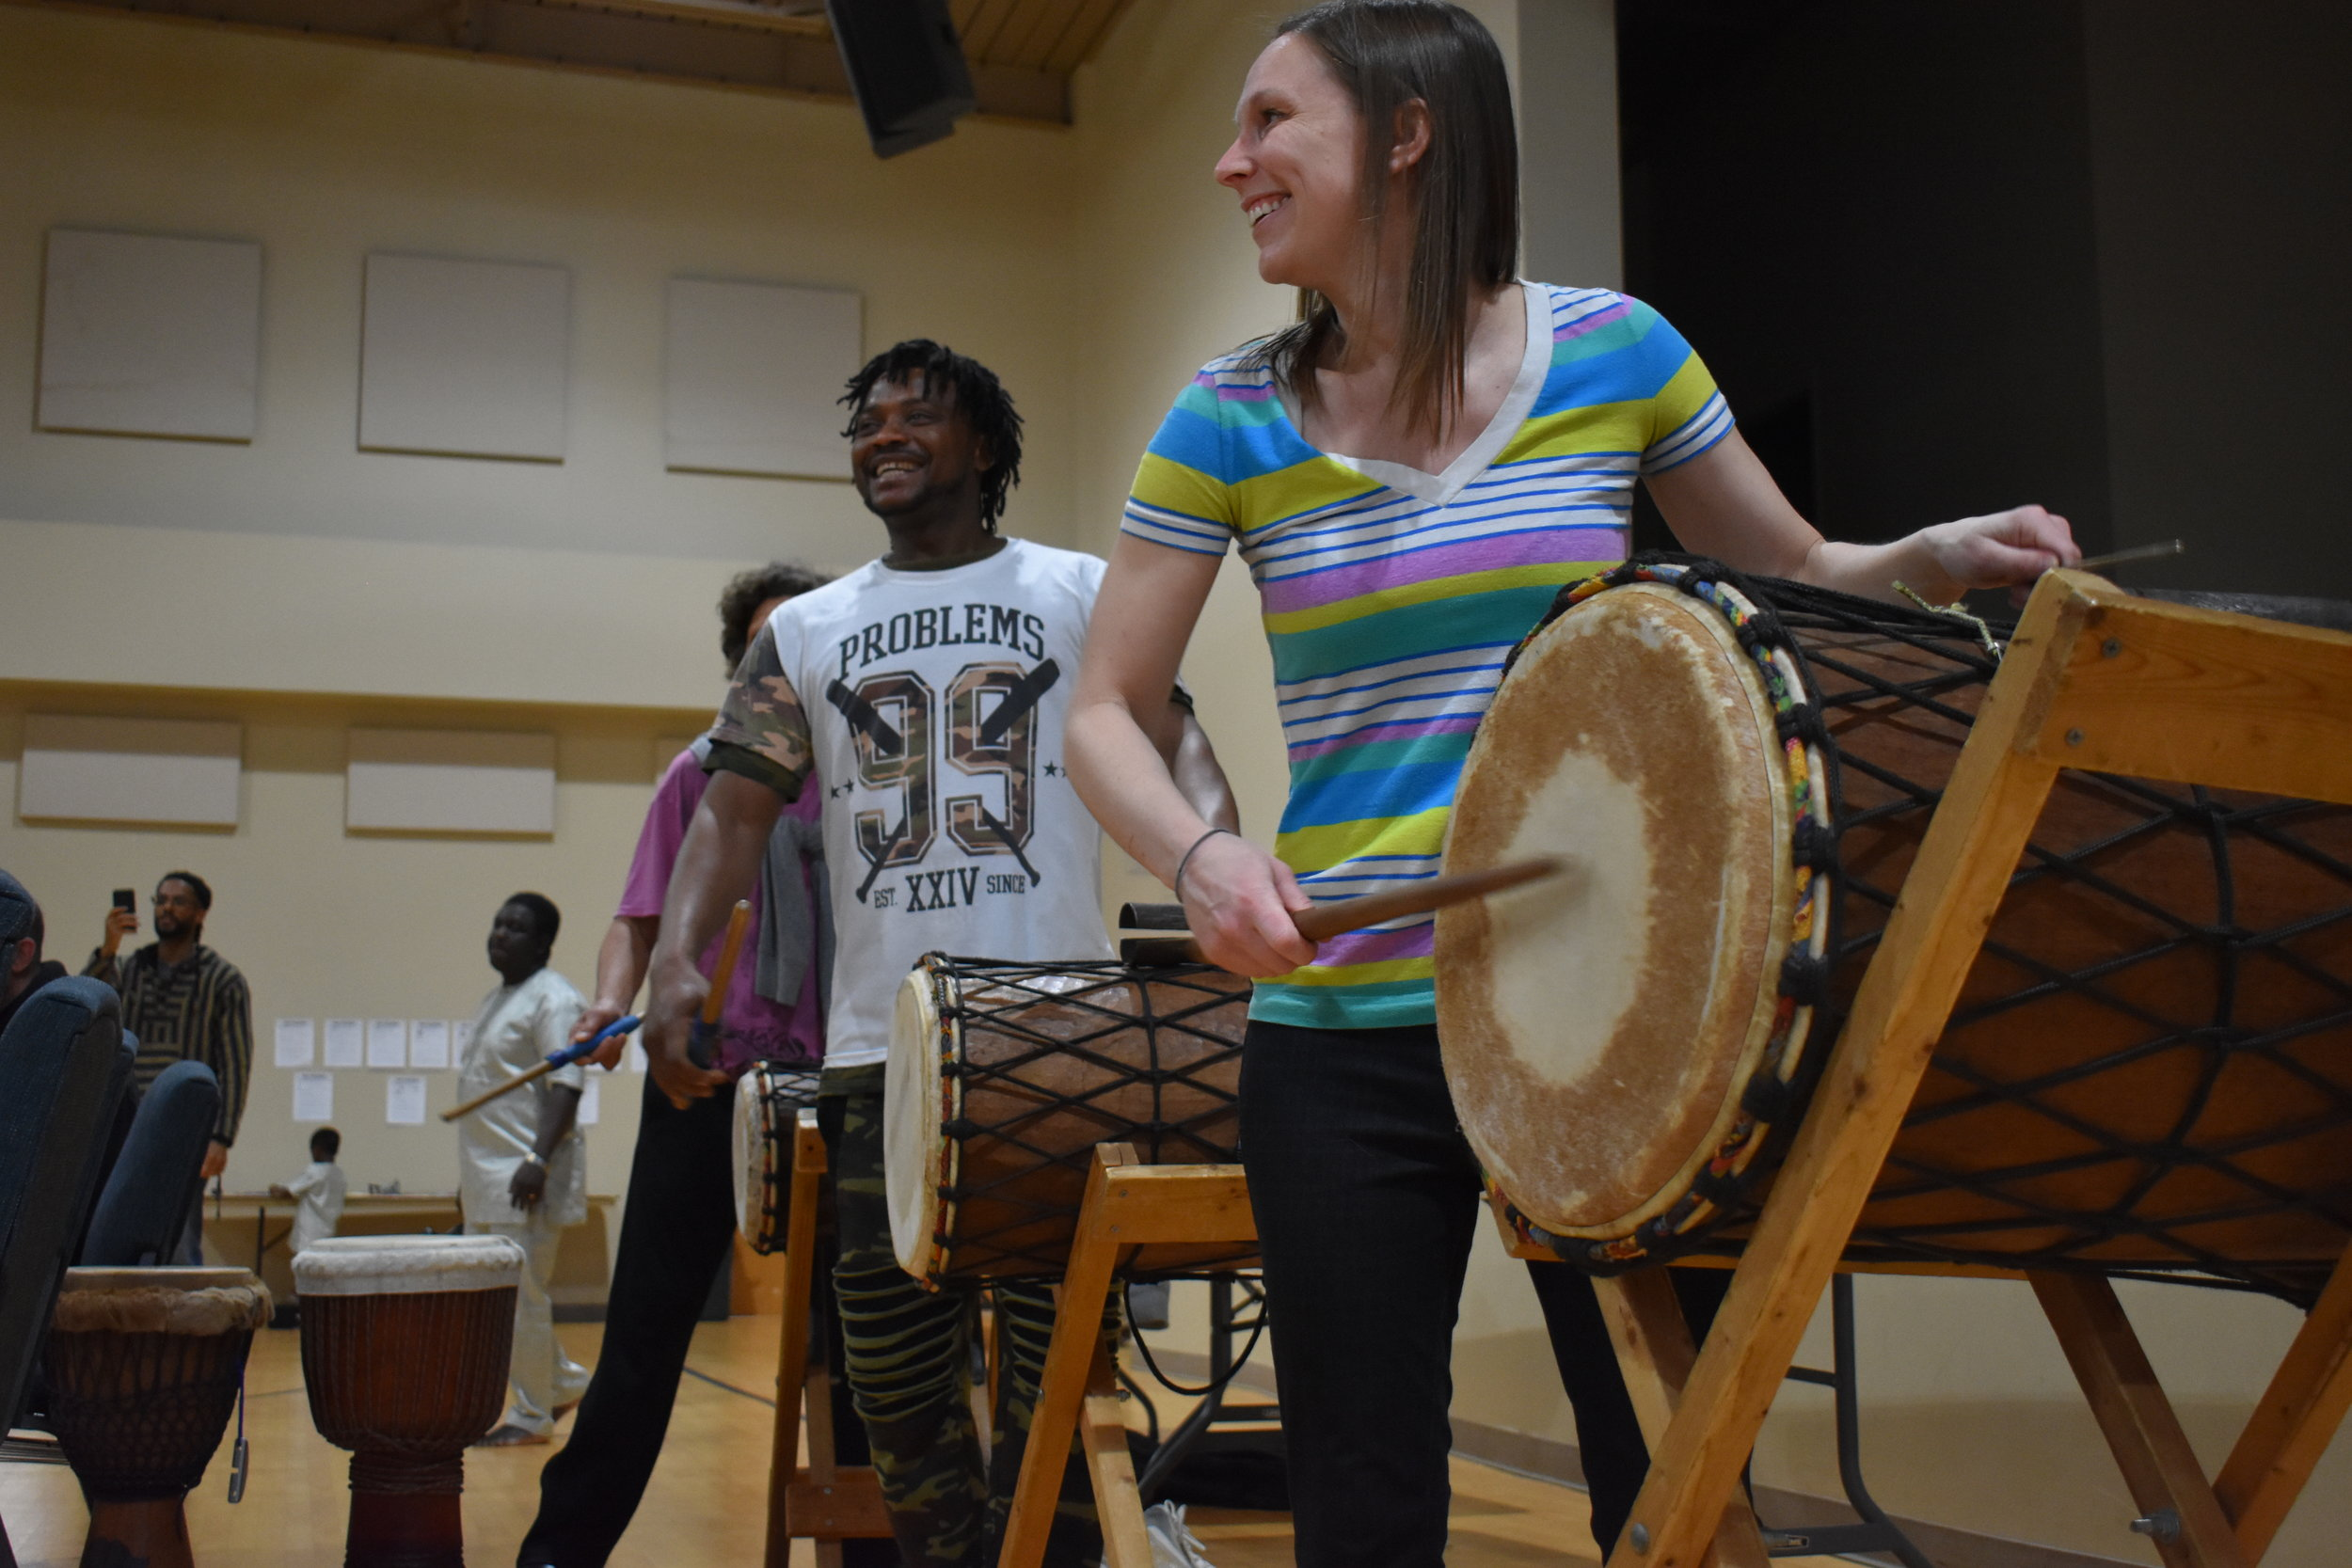 Senny Daffé (Conakry, Guinea) teaches dundun drums to MU professor Dr. Megan Arns and Columbia community members